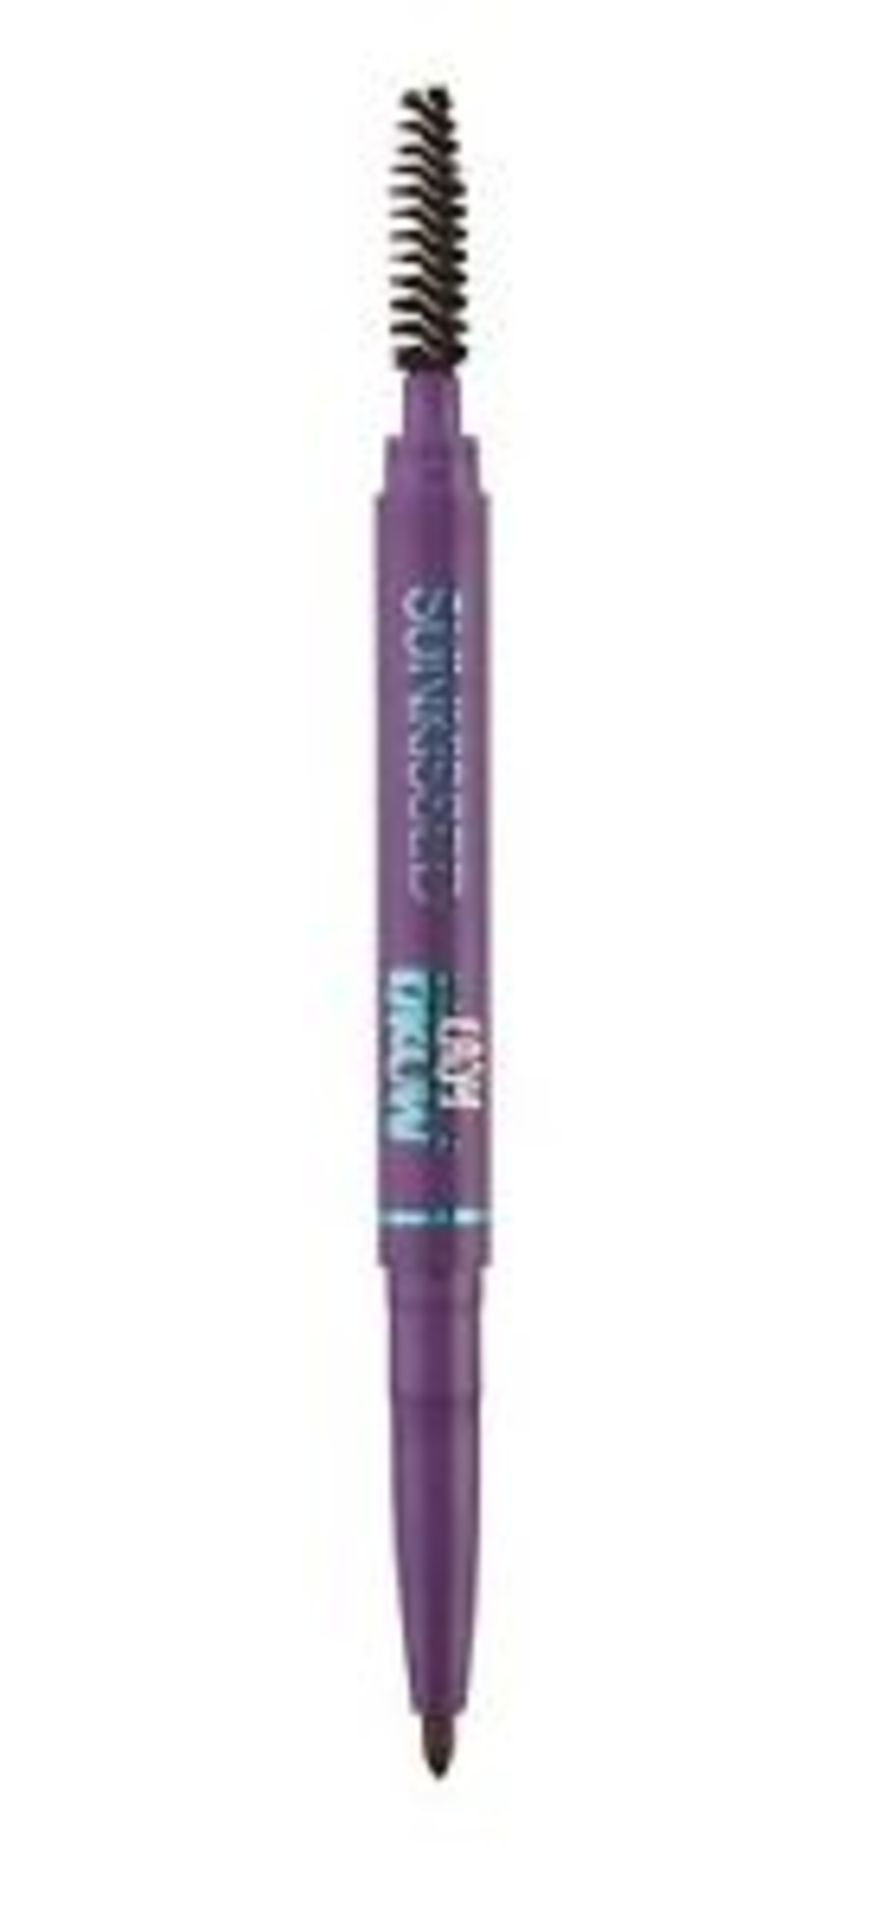 + VAT Brand New Sunkissed Easy Brow 2in1 Pencil Med. Dark